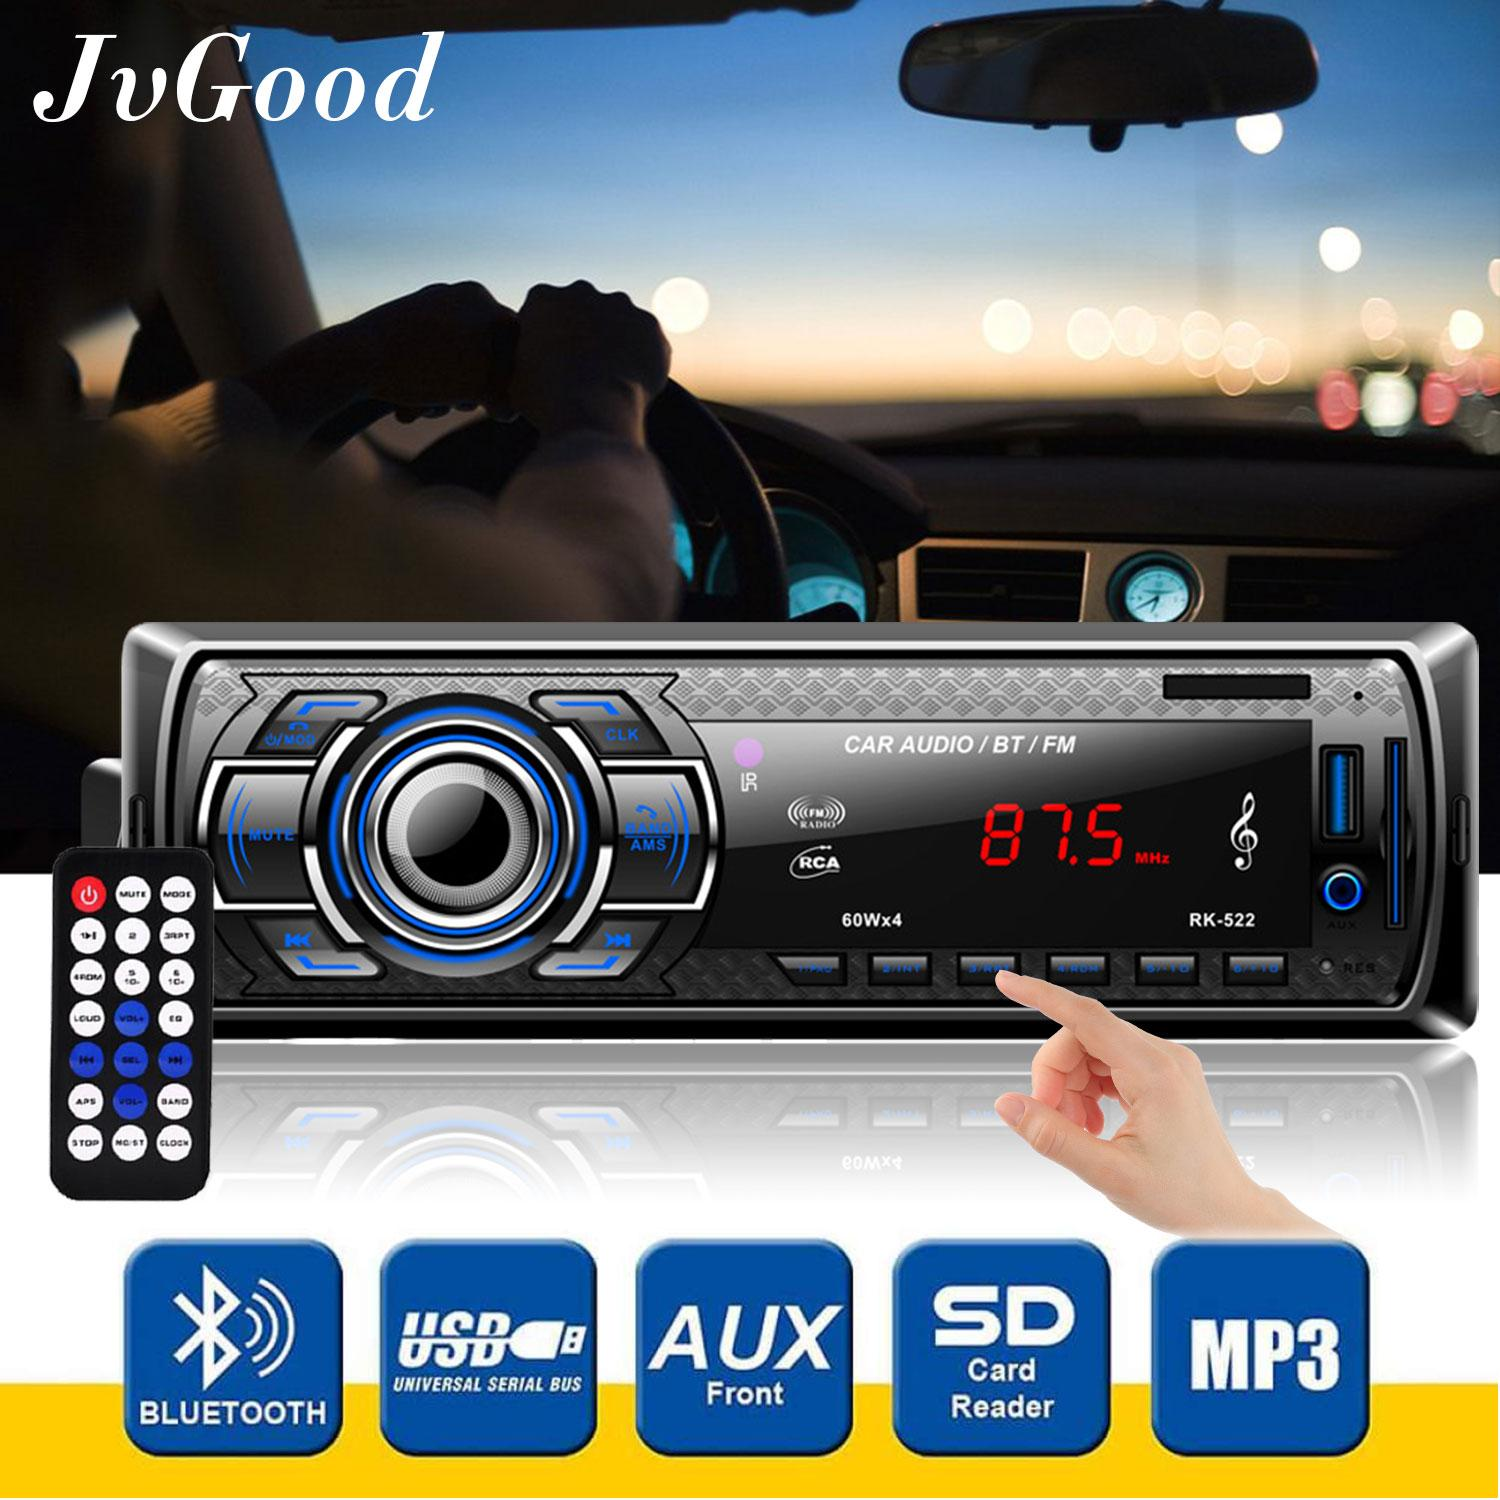 Jvgood เครื่องเล่นวิทยุติดรถยนต์ Car Stereo Receiver Car Audio Radio Player Bluetooth Stereo Car Mp3 Player Wireless Digital Media Single-Din In Dash Receivers With Sd/usb/aux-In/fm Radio Remote Control.